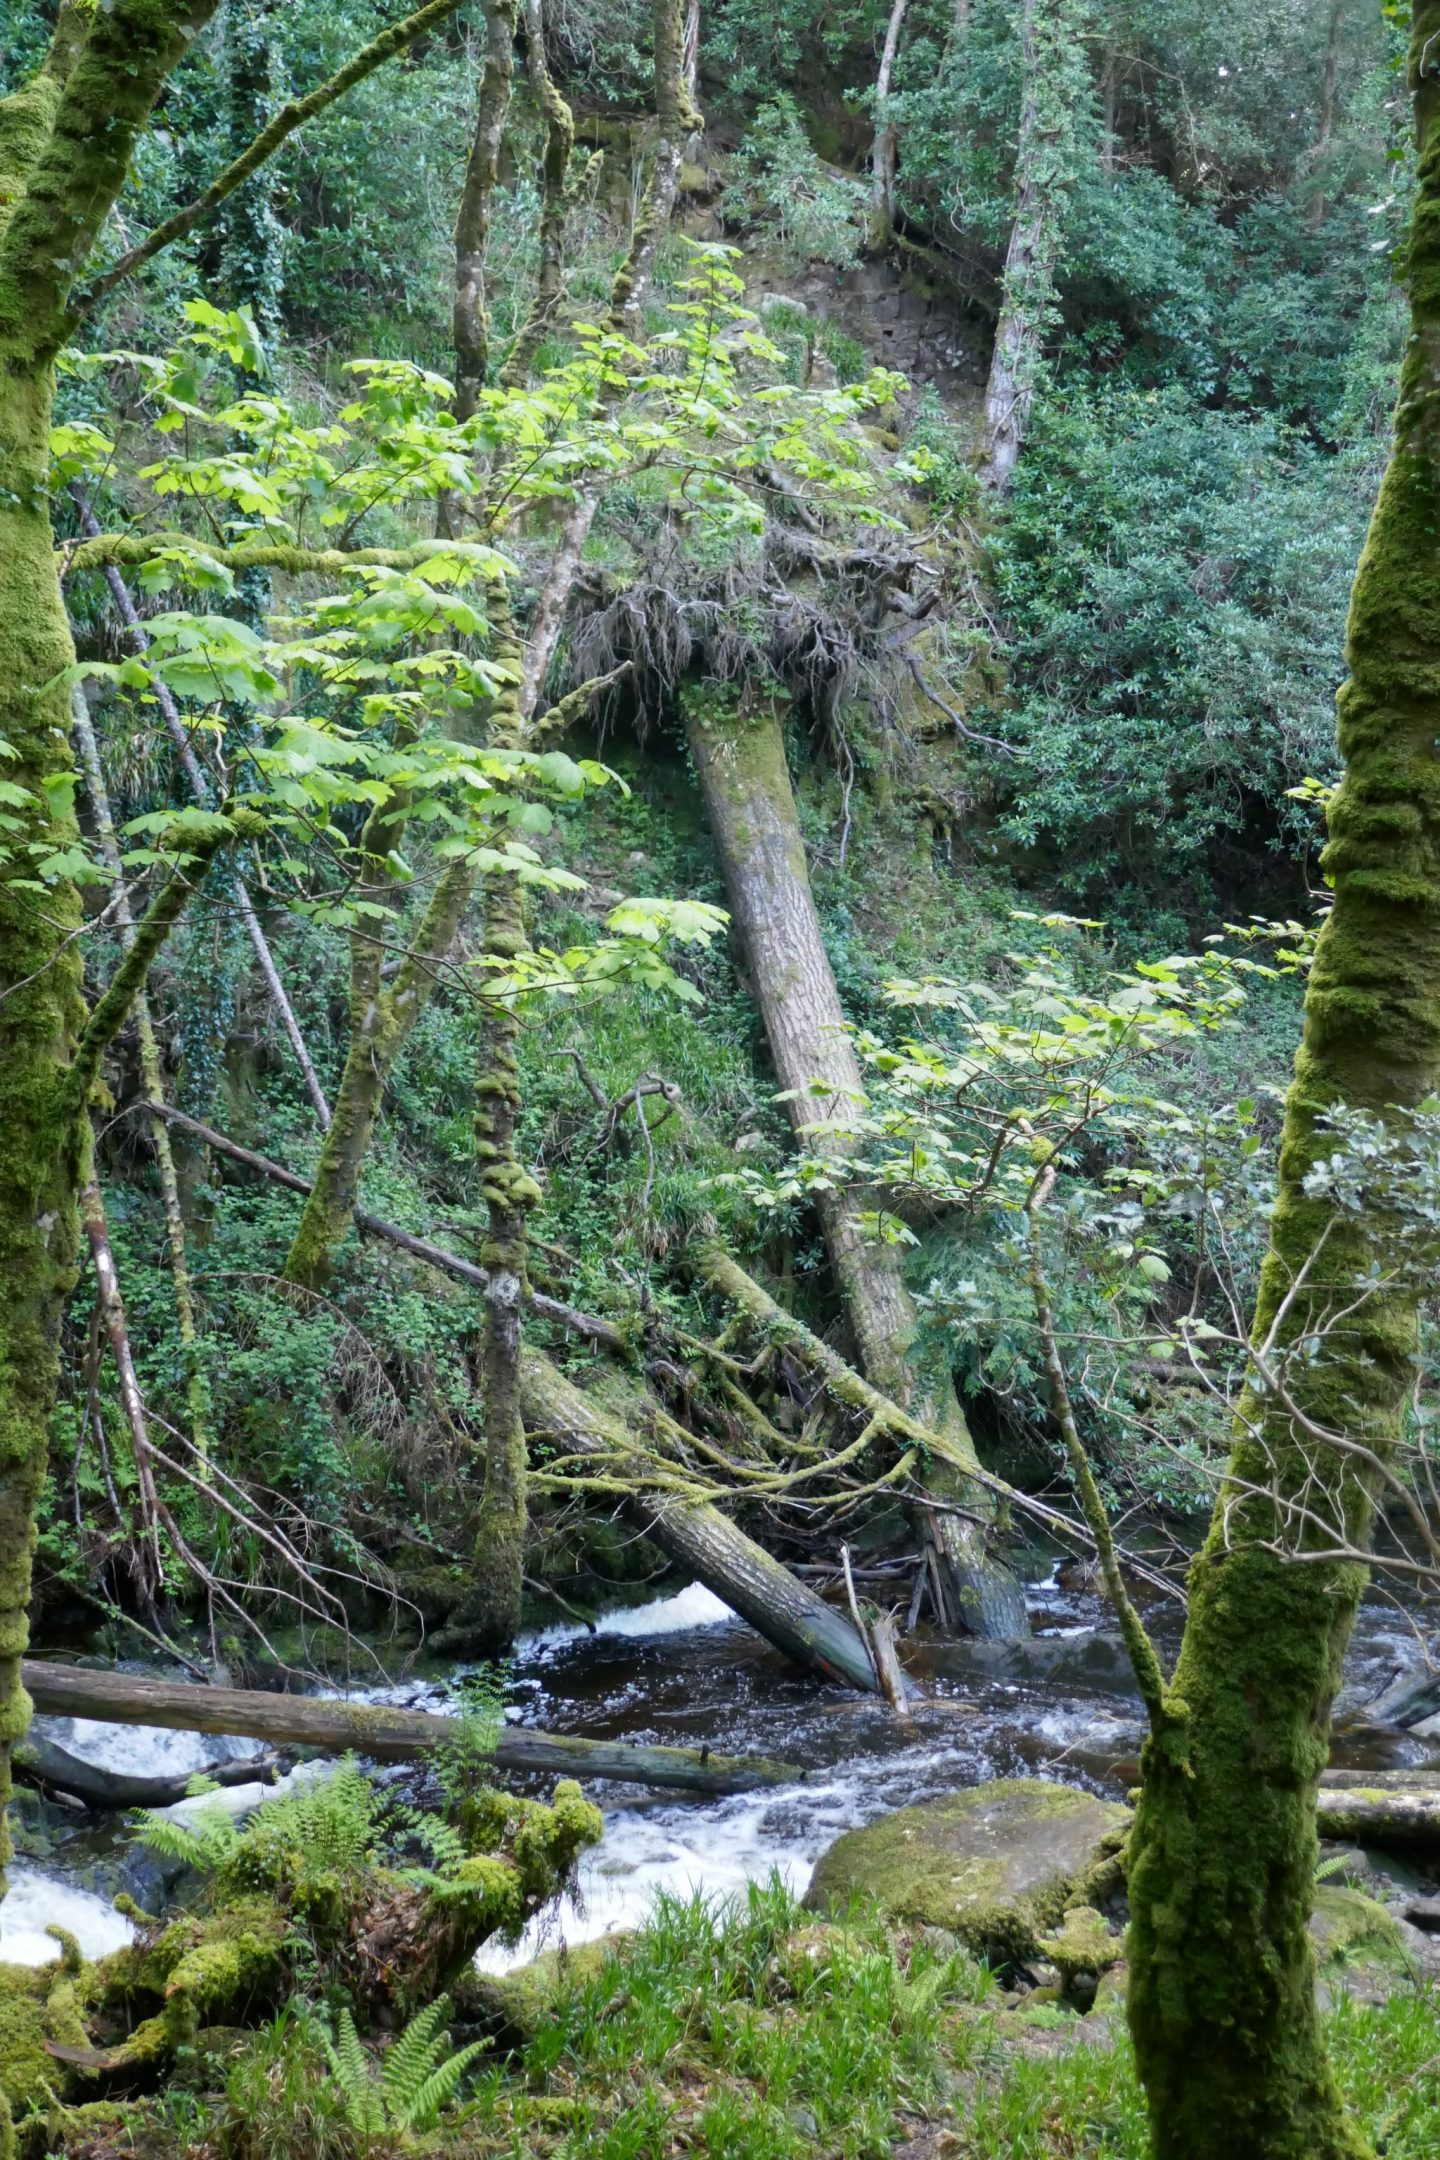 Tree down on the bank of river by Torc Waterfall